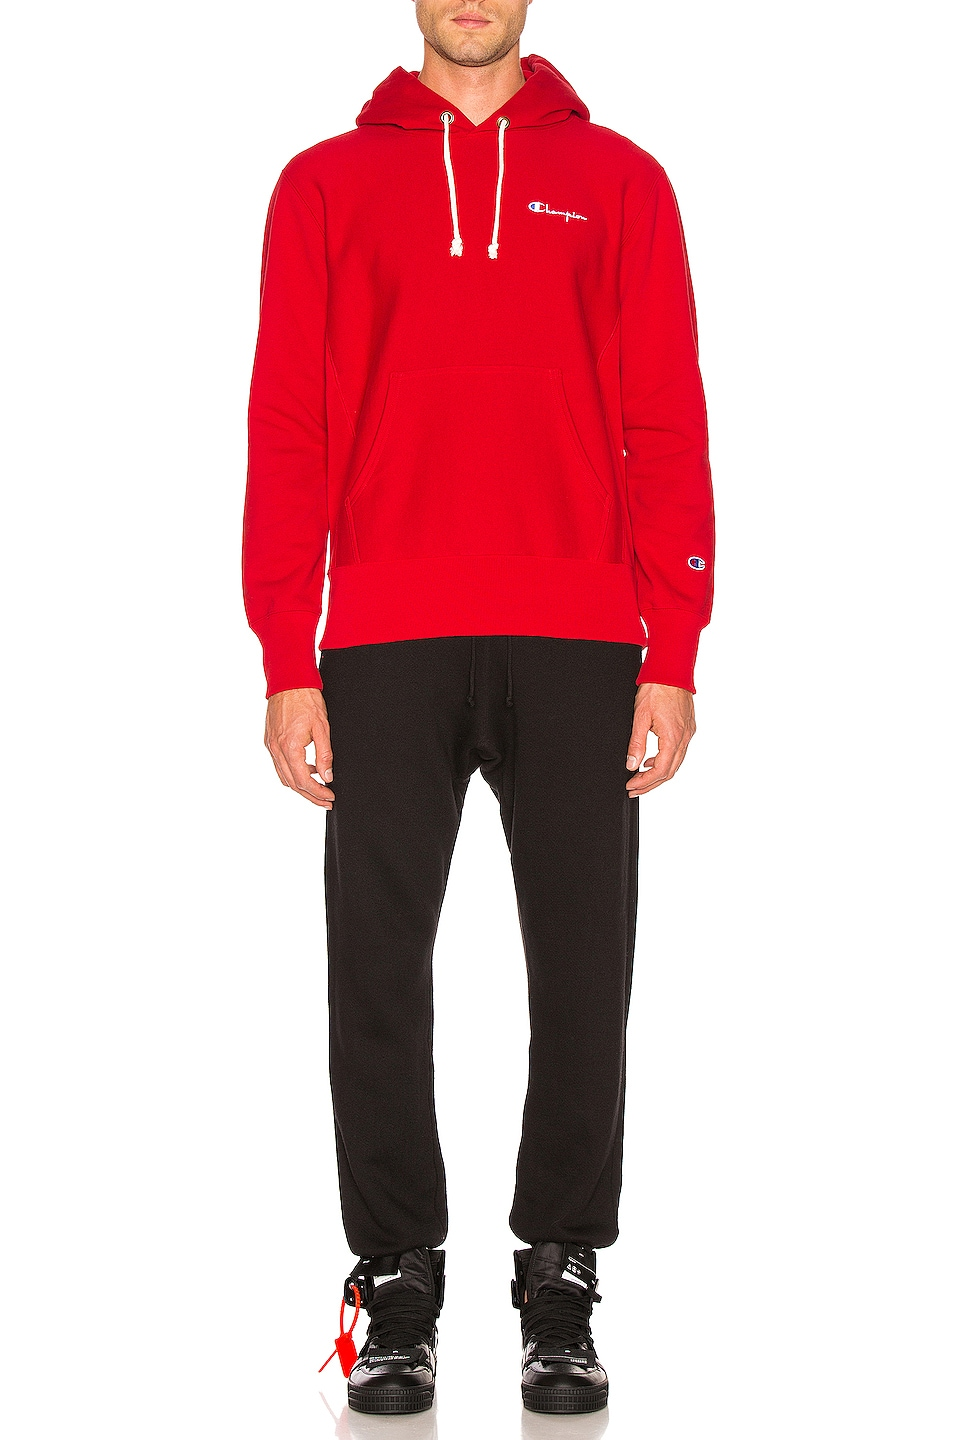 Image 4 of Champion Reverse Weave Champion Hooded Sweatshirt in Red